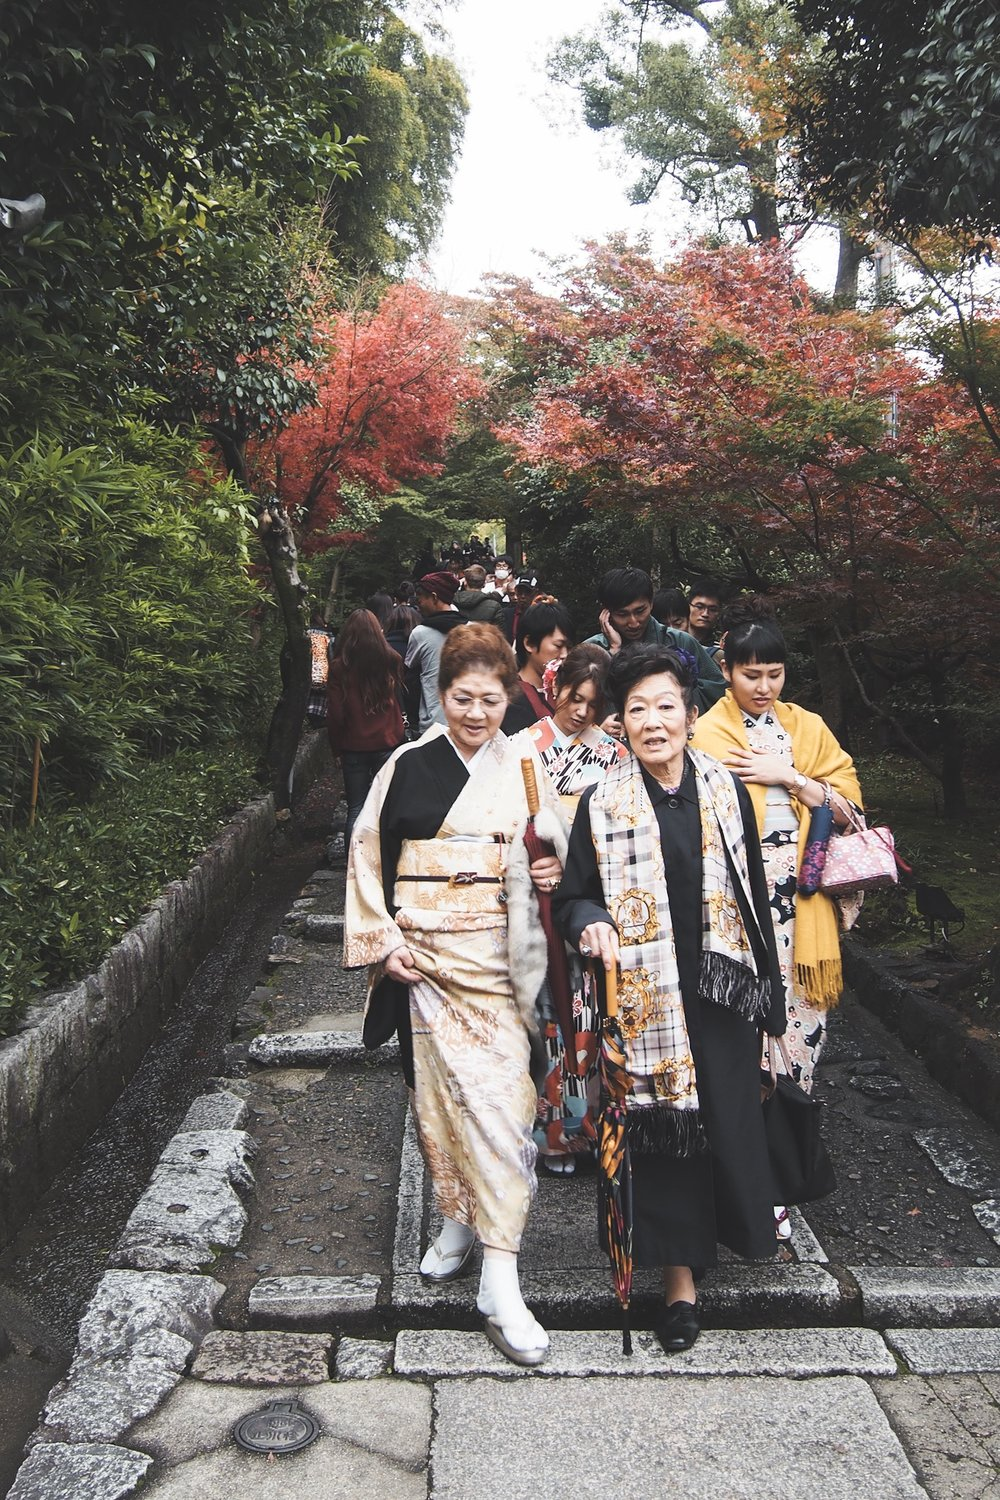 Japanese women in traditional Kimono in kyoto during the fall